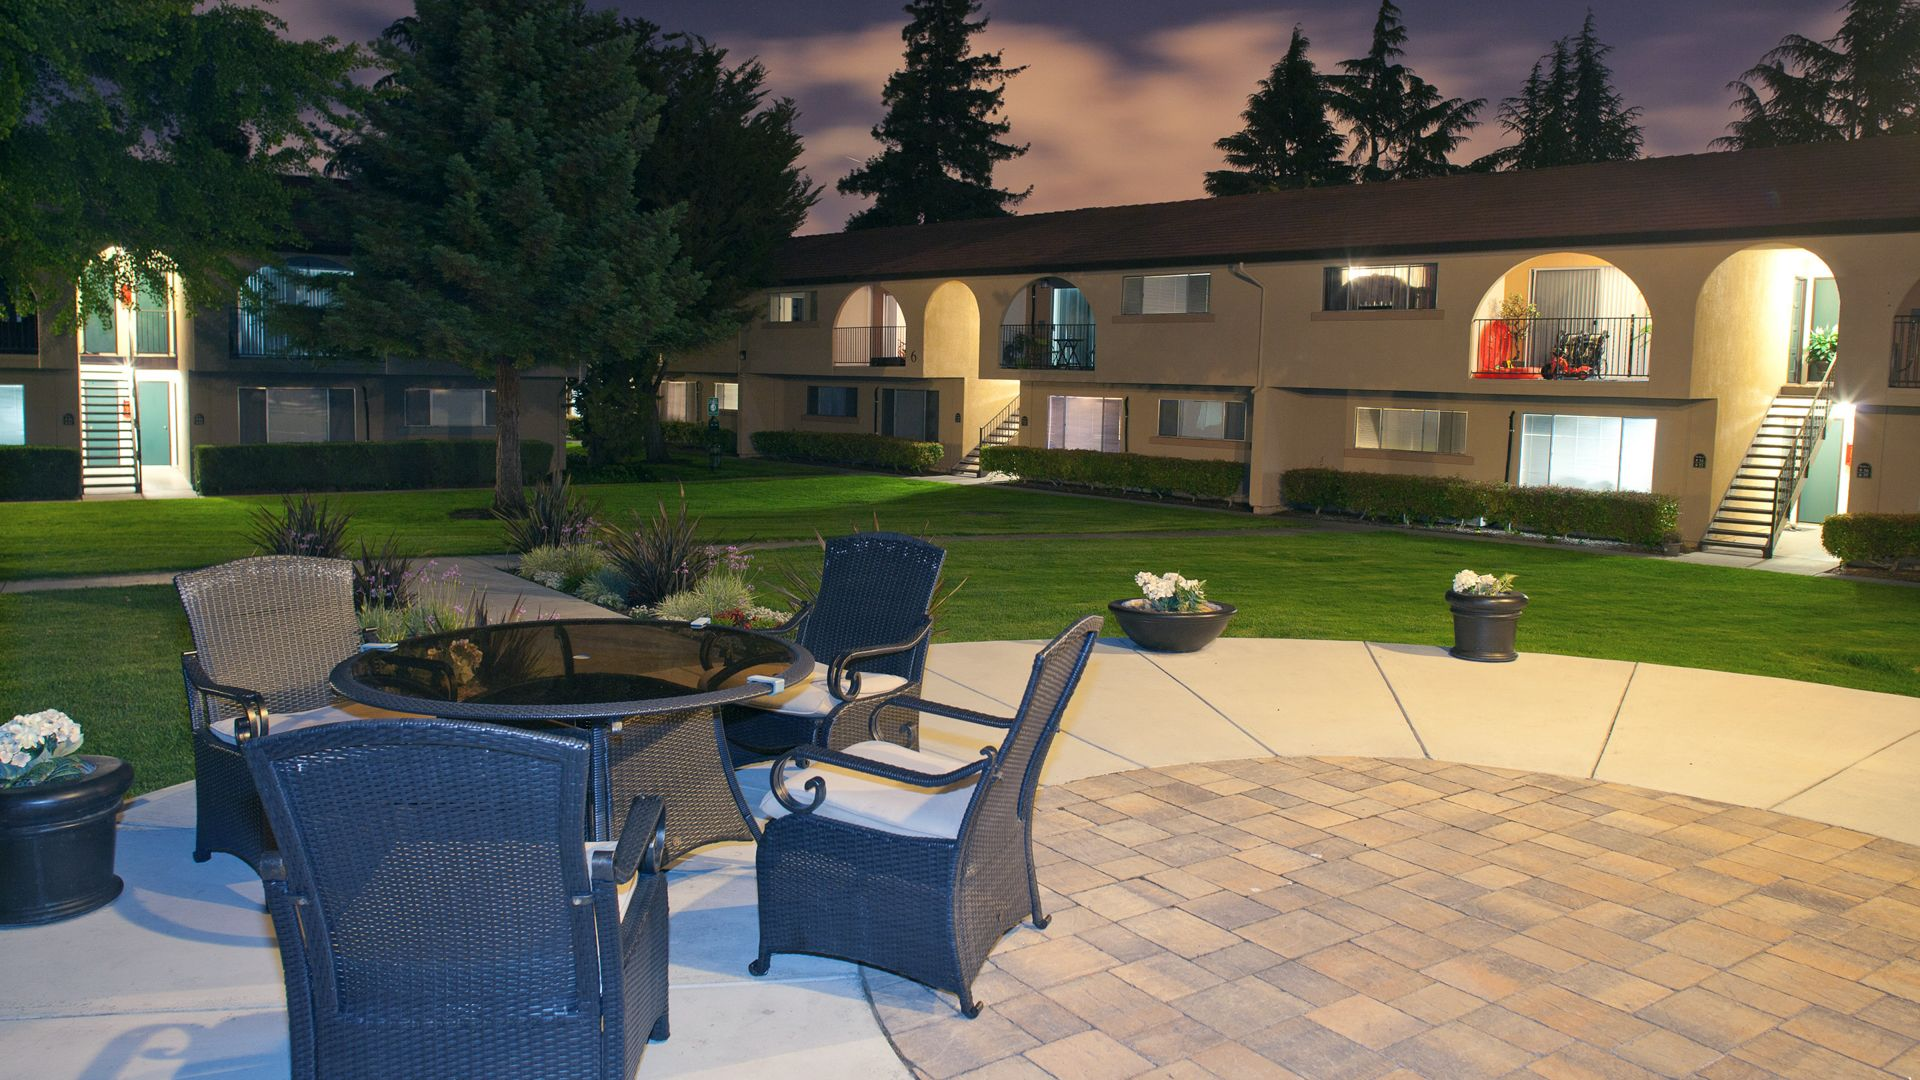 The Arches Apartments - Outdoor Seating Area